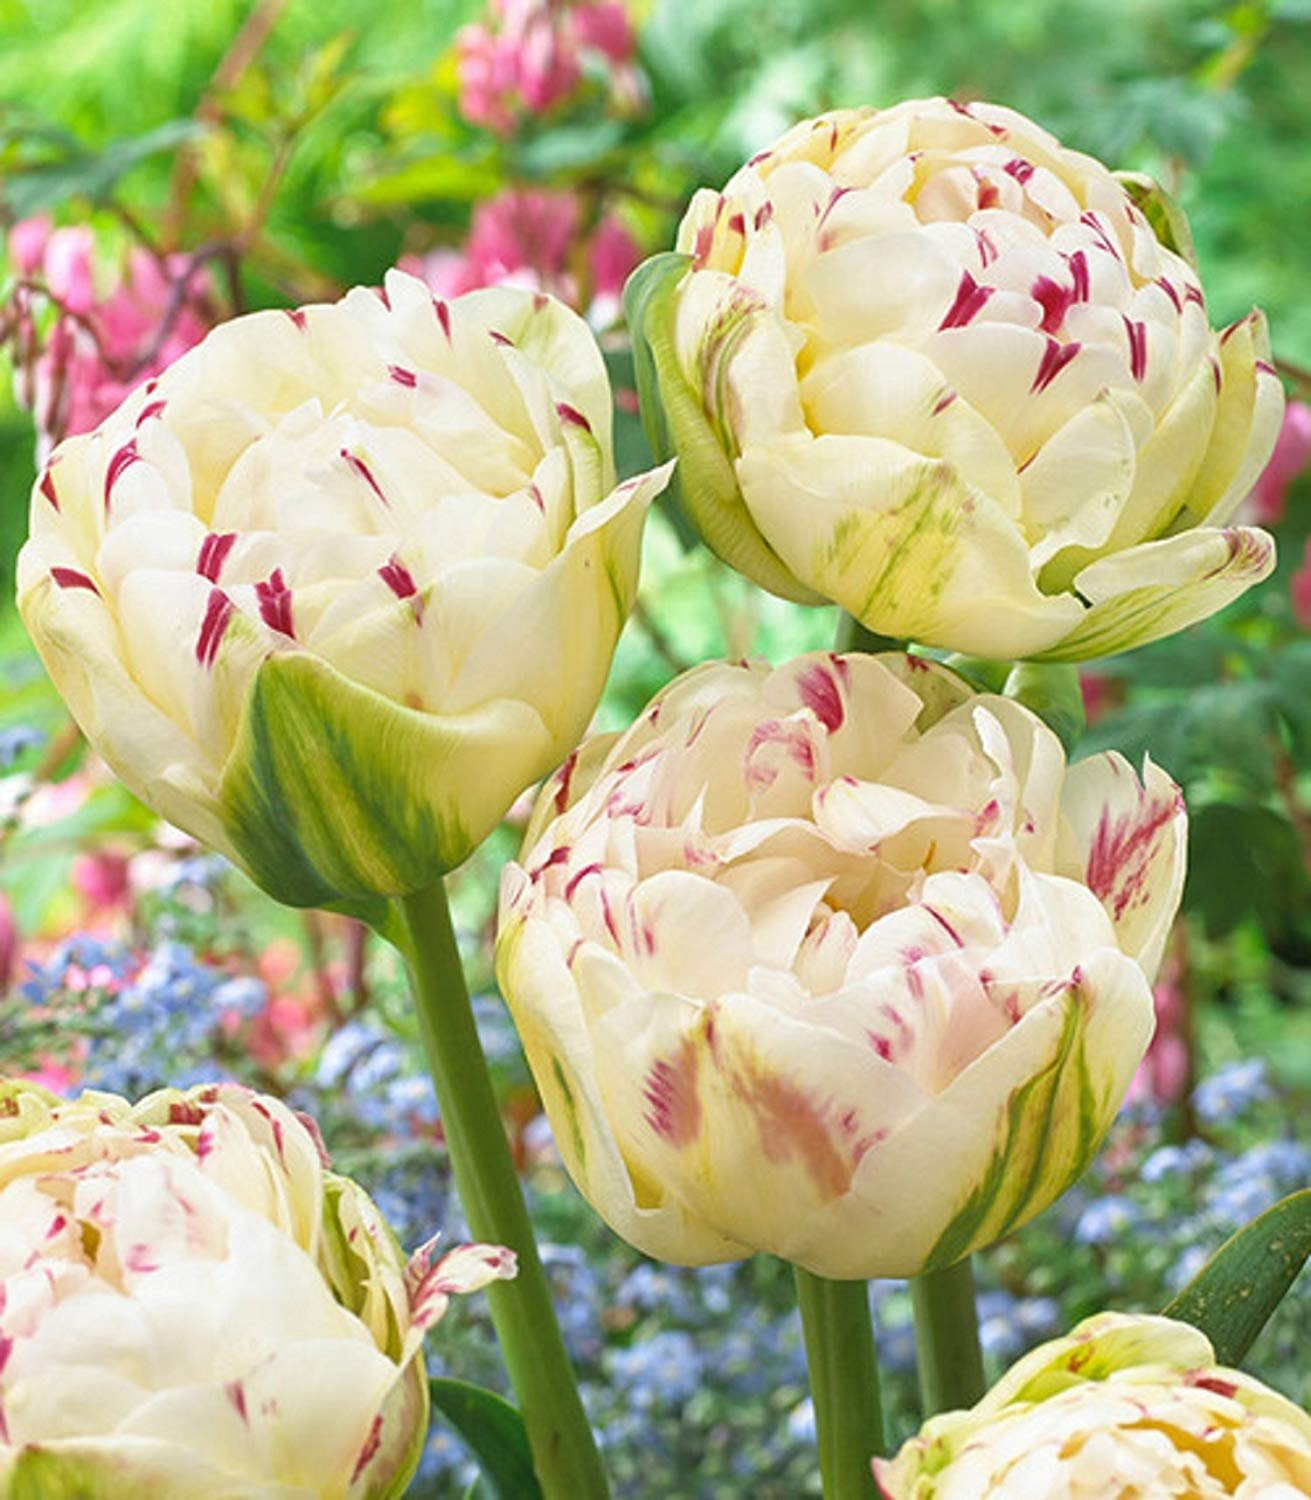 10 Tulip DANCELINE-Select Collection-Double Peony Heads- Plant for Spring-Plant with Daffodil,Crocus,SNOWDROP10/12cm